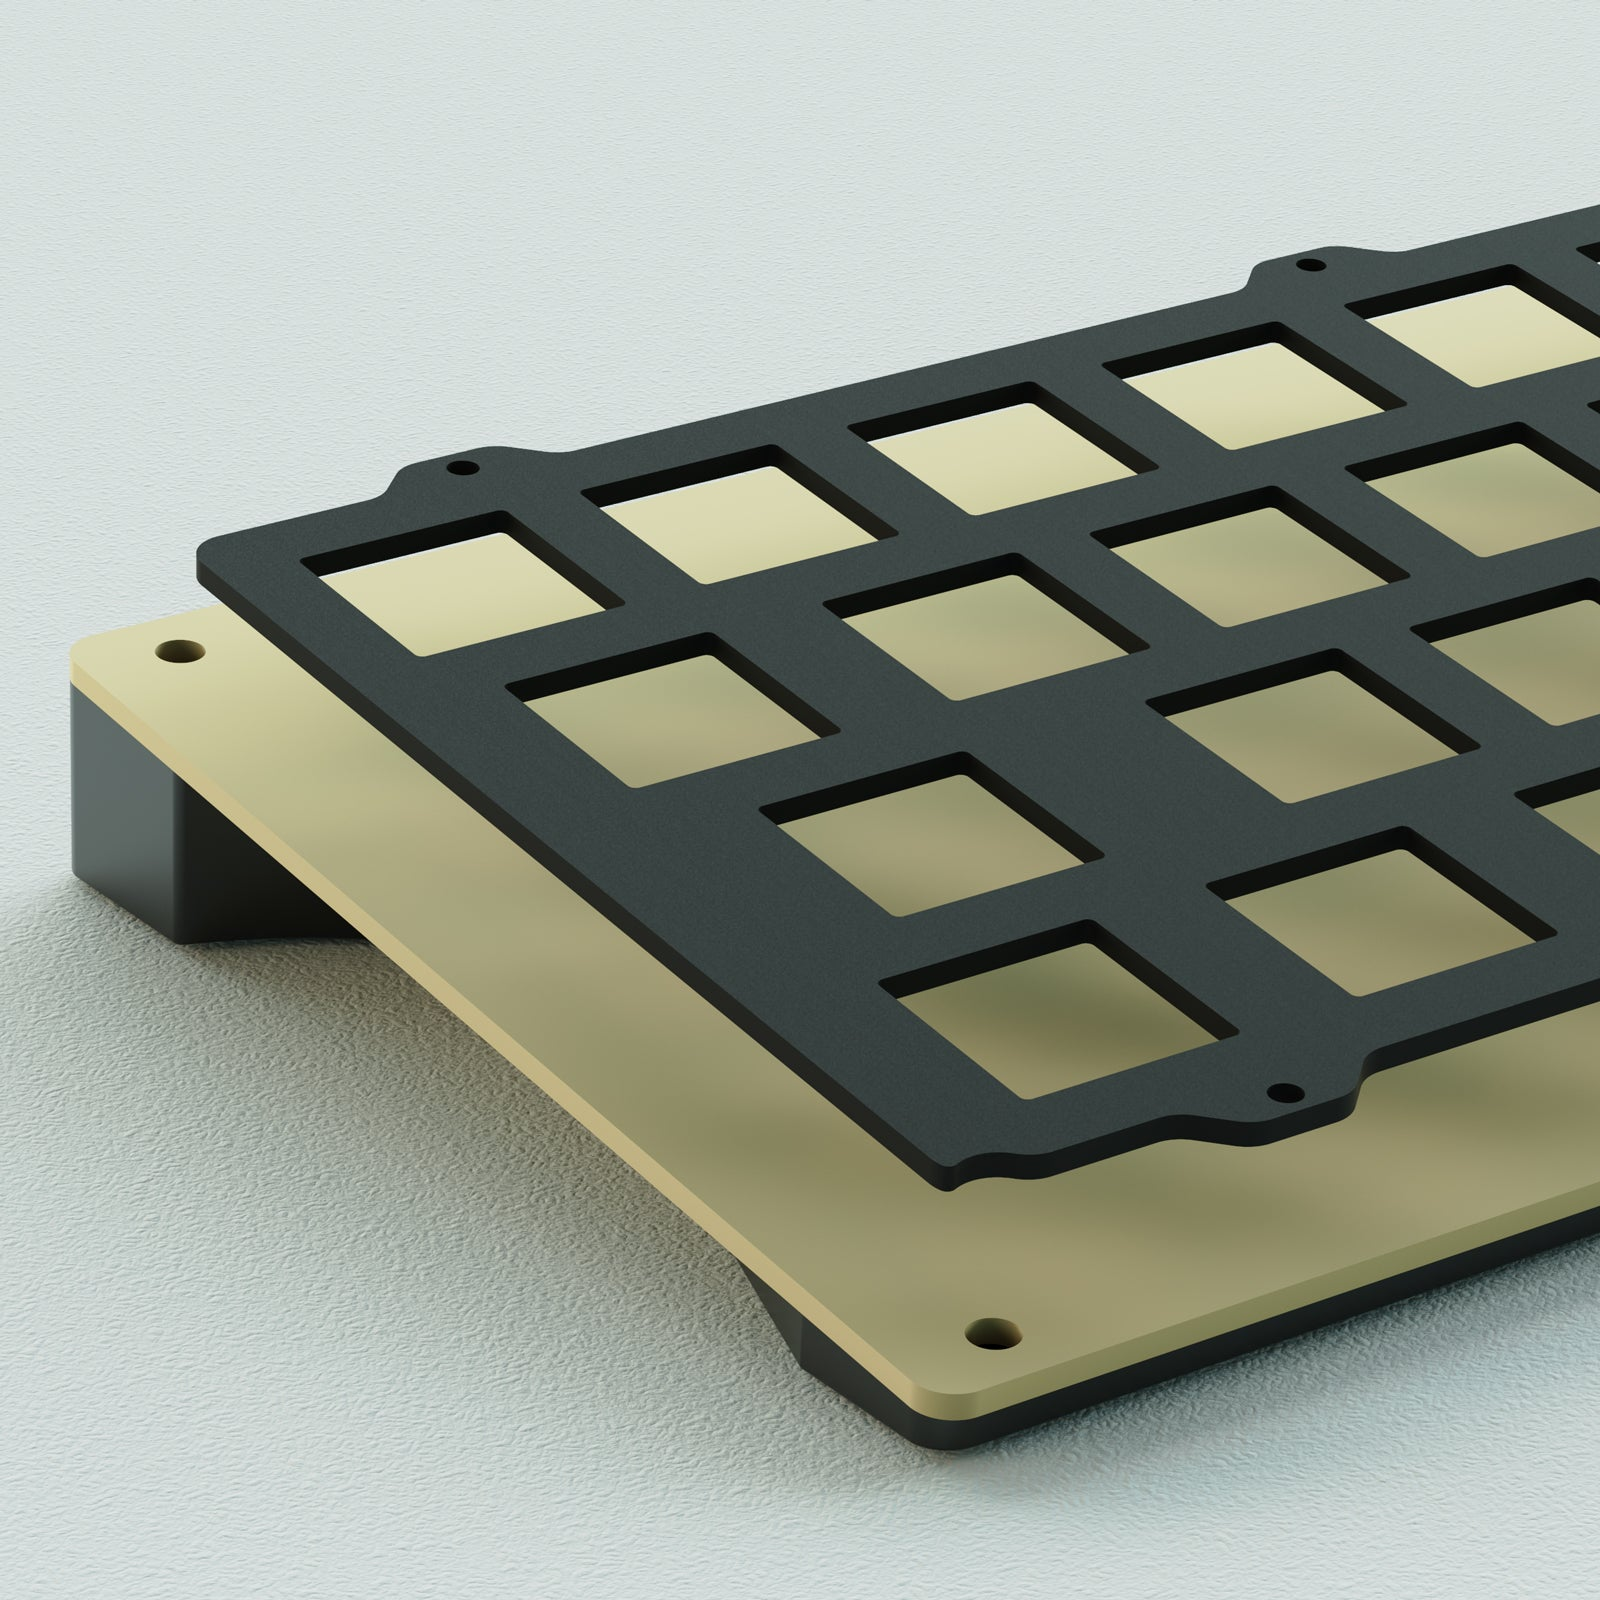 [GB] Elongate - Plate [Extra]